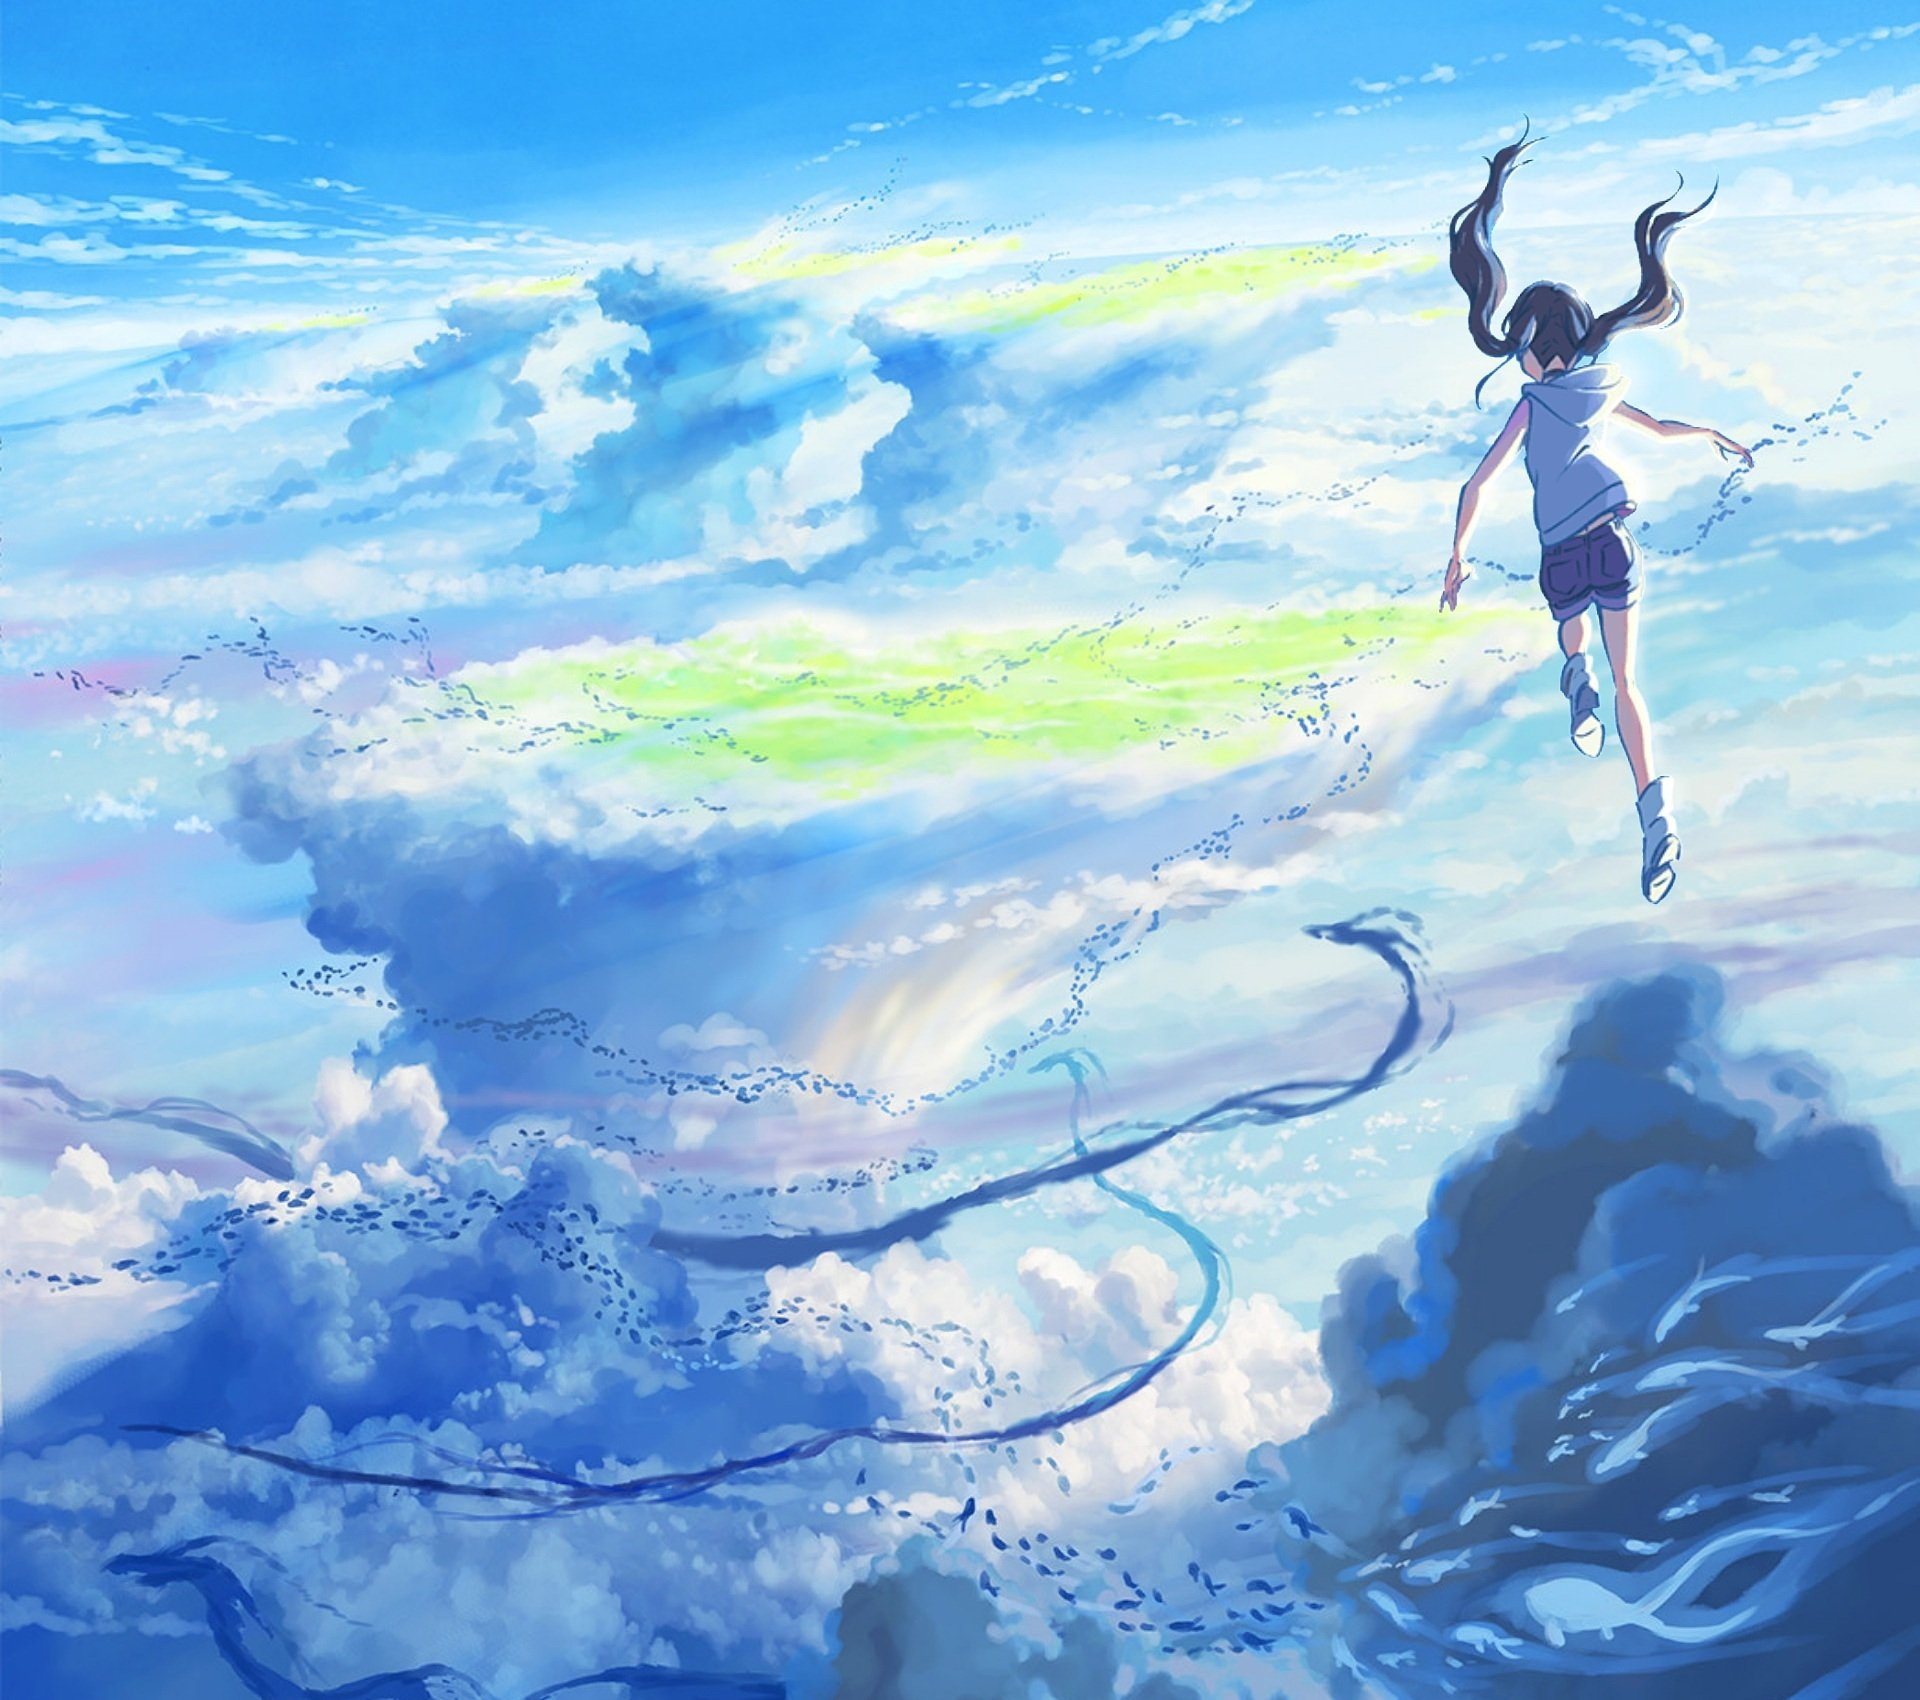 Wallpapers ID:1003105